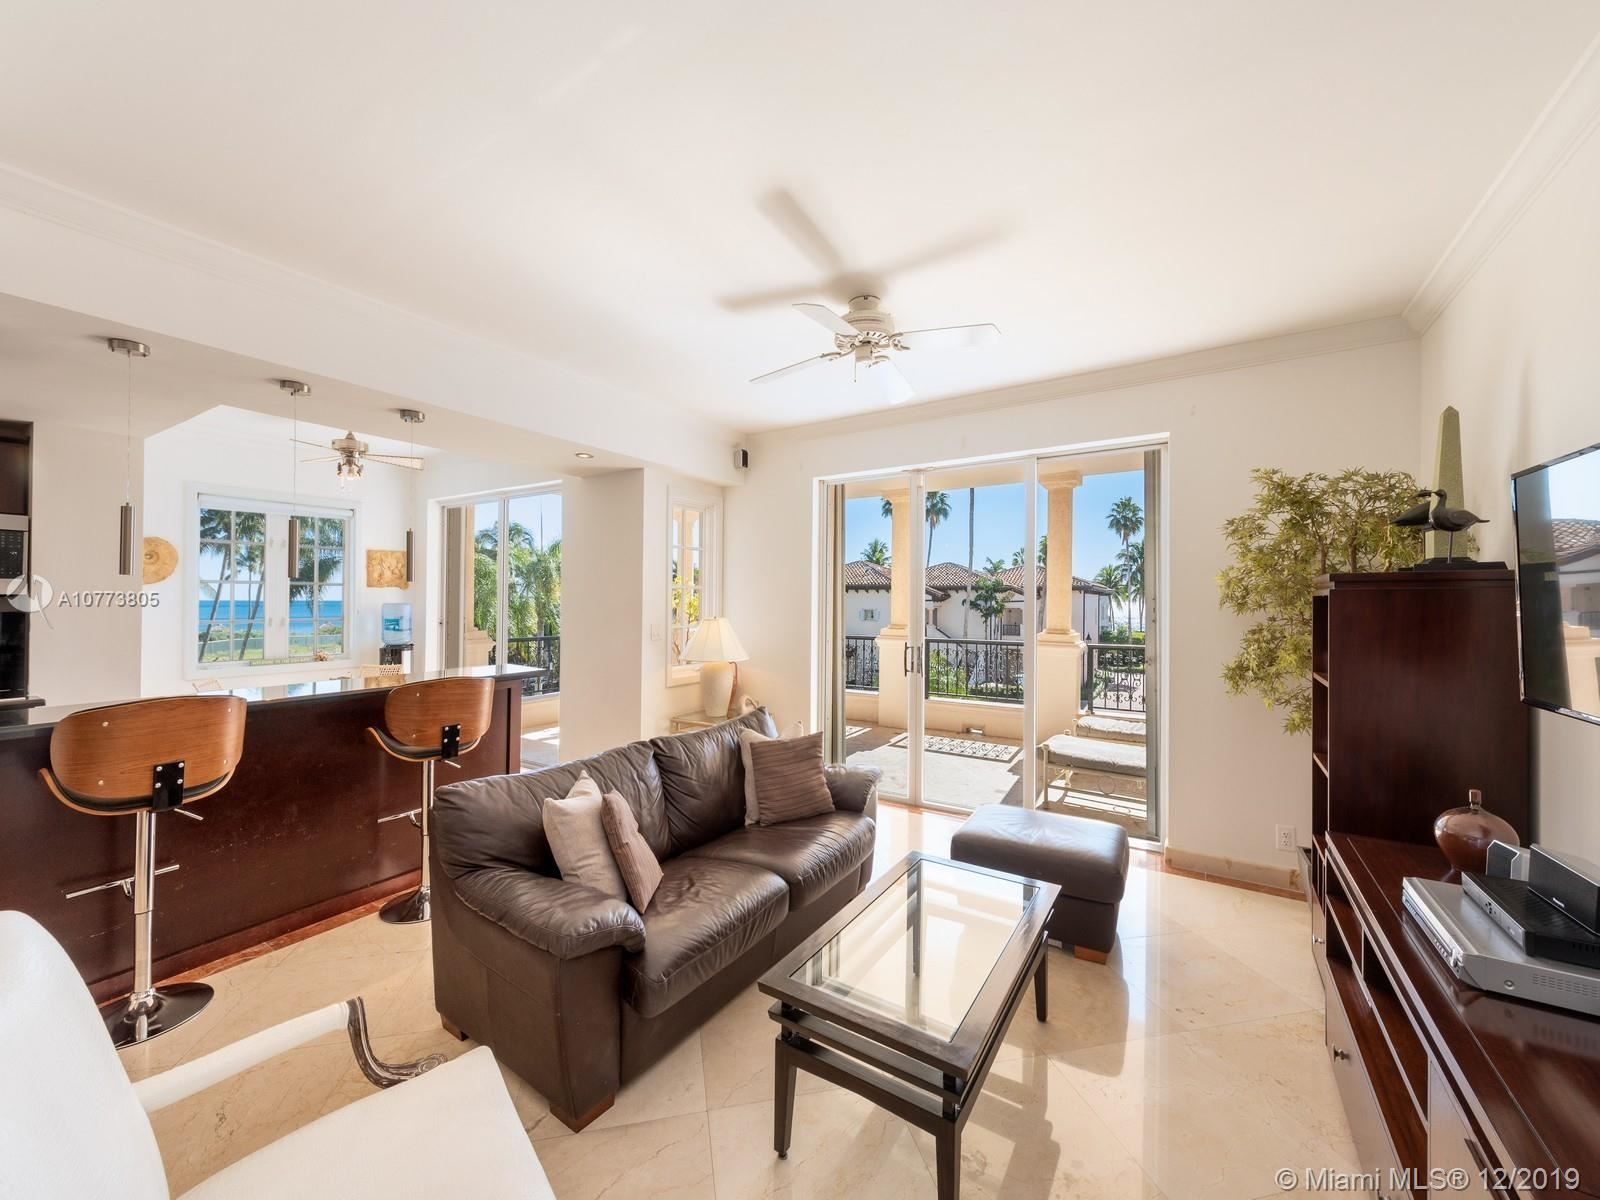 Photo of 19122 FISHER ISLAND DR #19122, Fisher Island, FL 33109 (MLS # A10773805)